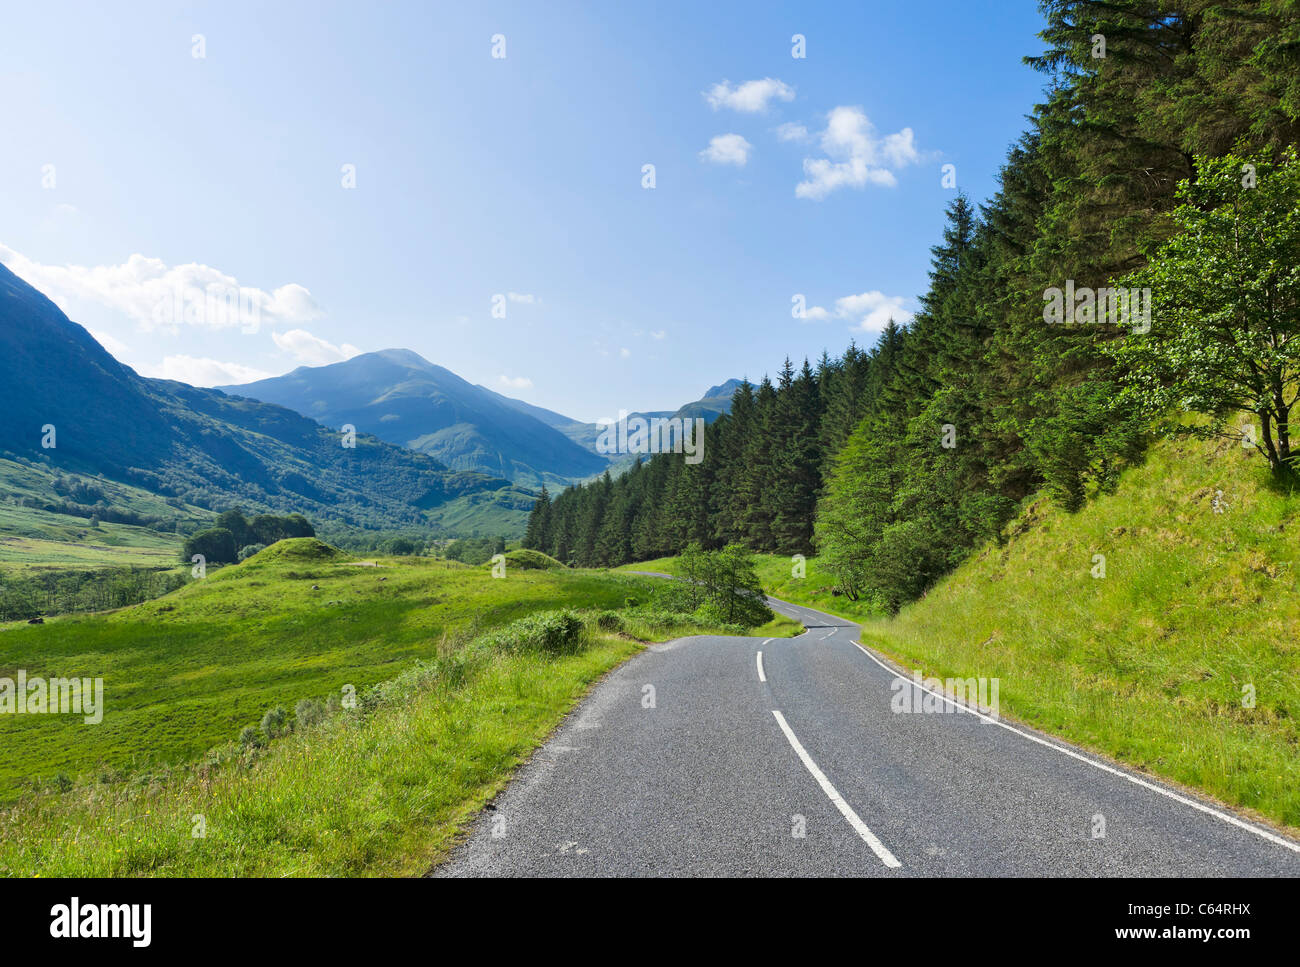 Carretera a través de Glen Nevis, Lochabar, Scottish Highlands, Scotland, Reino Unido Imagen De Stock